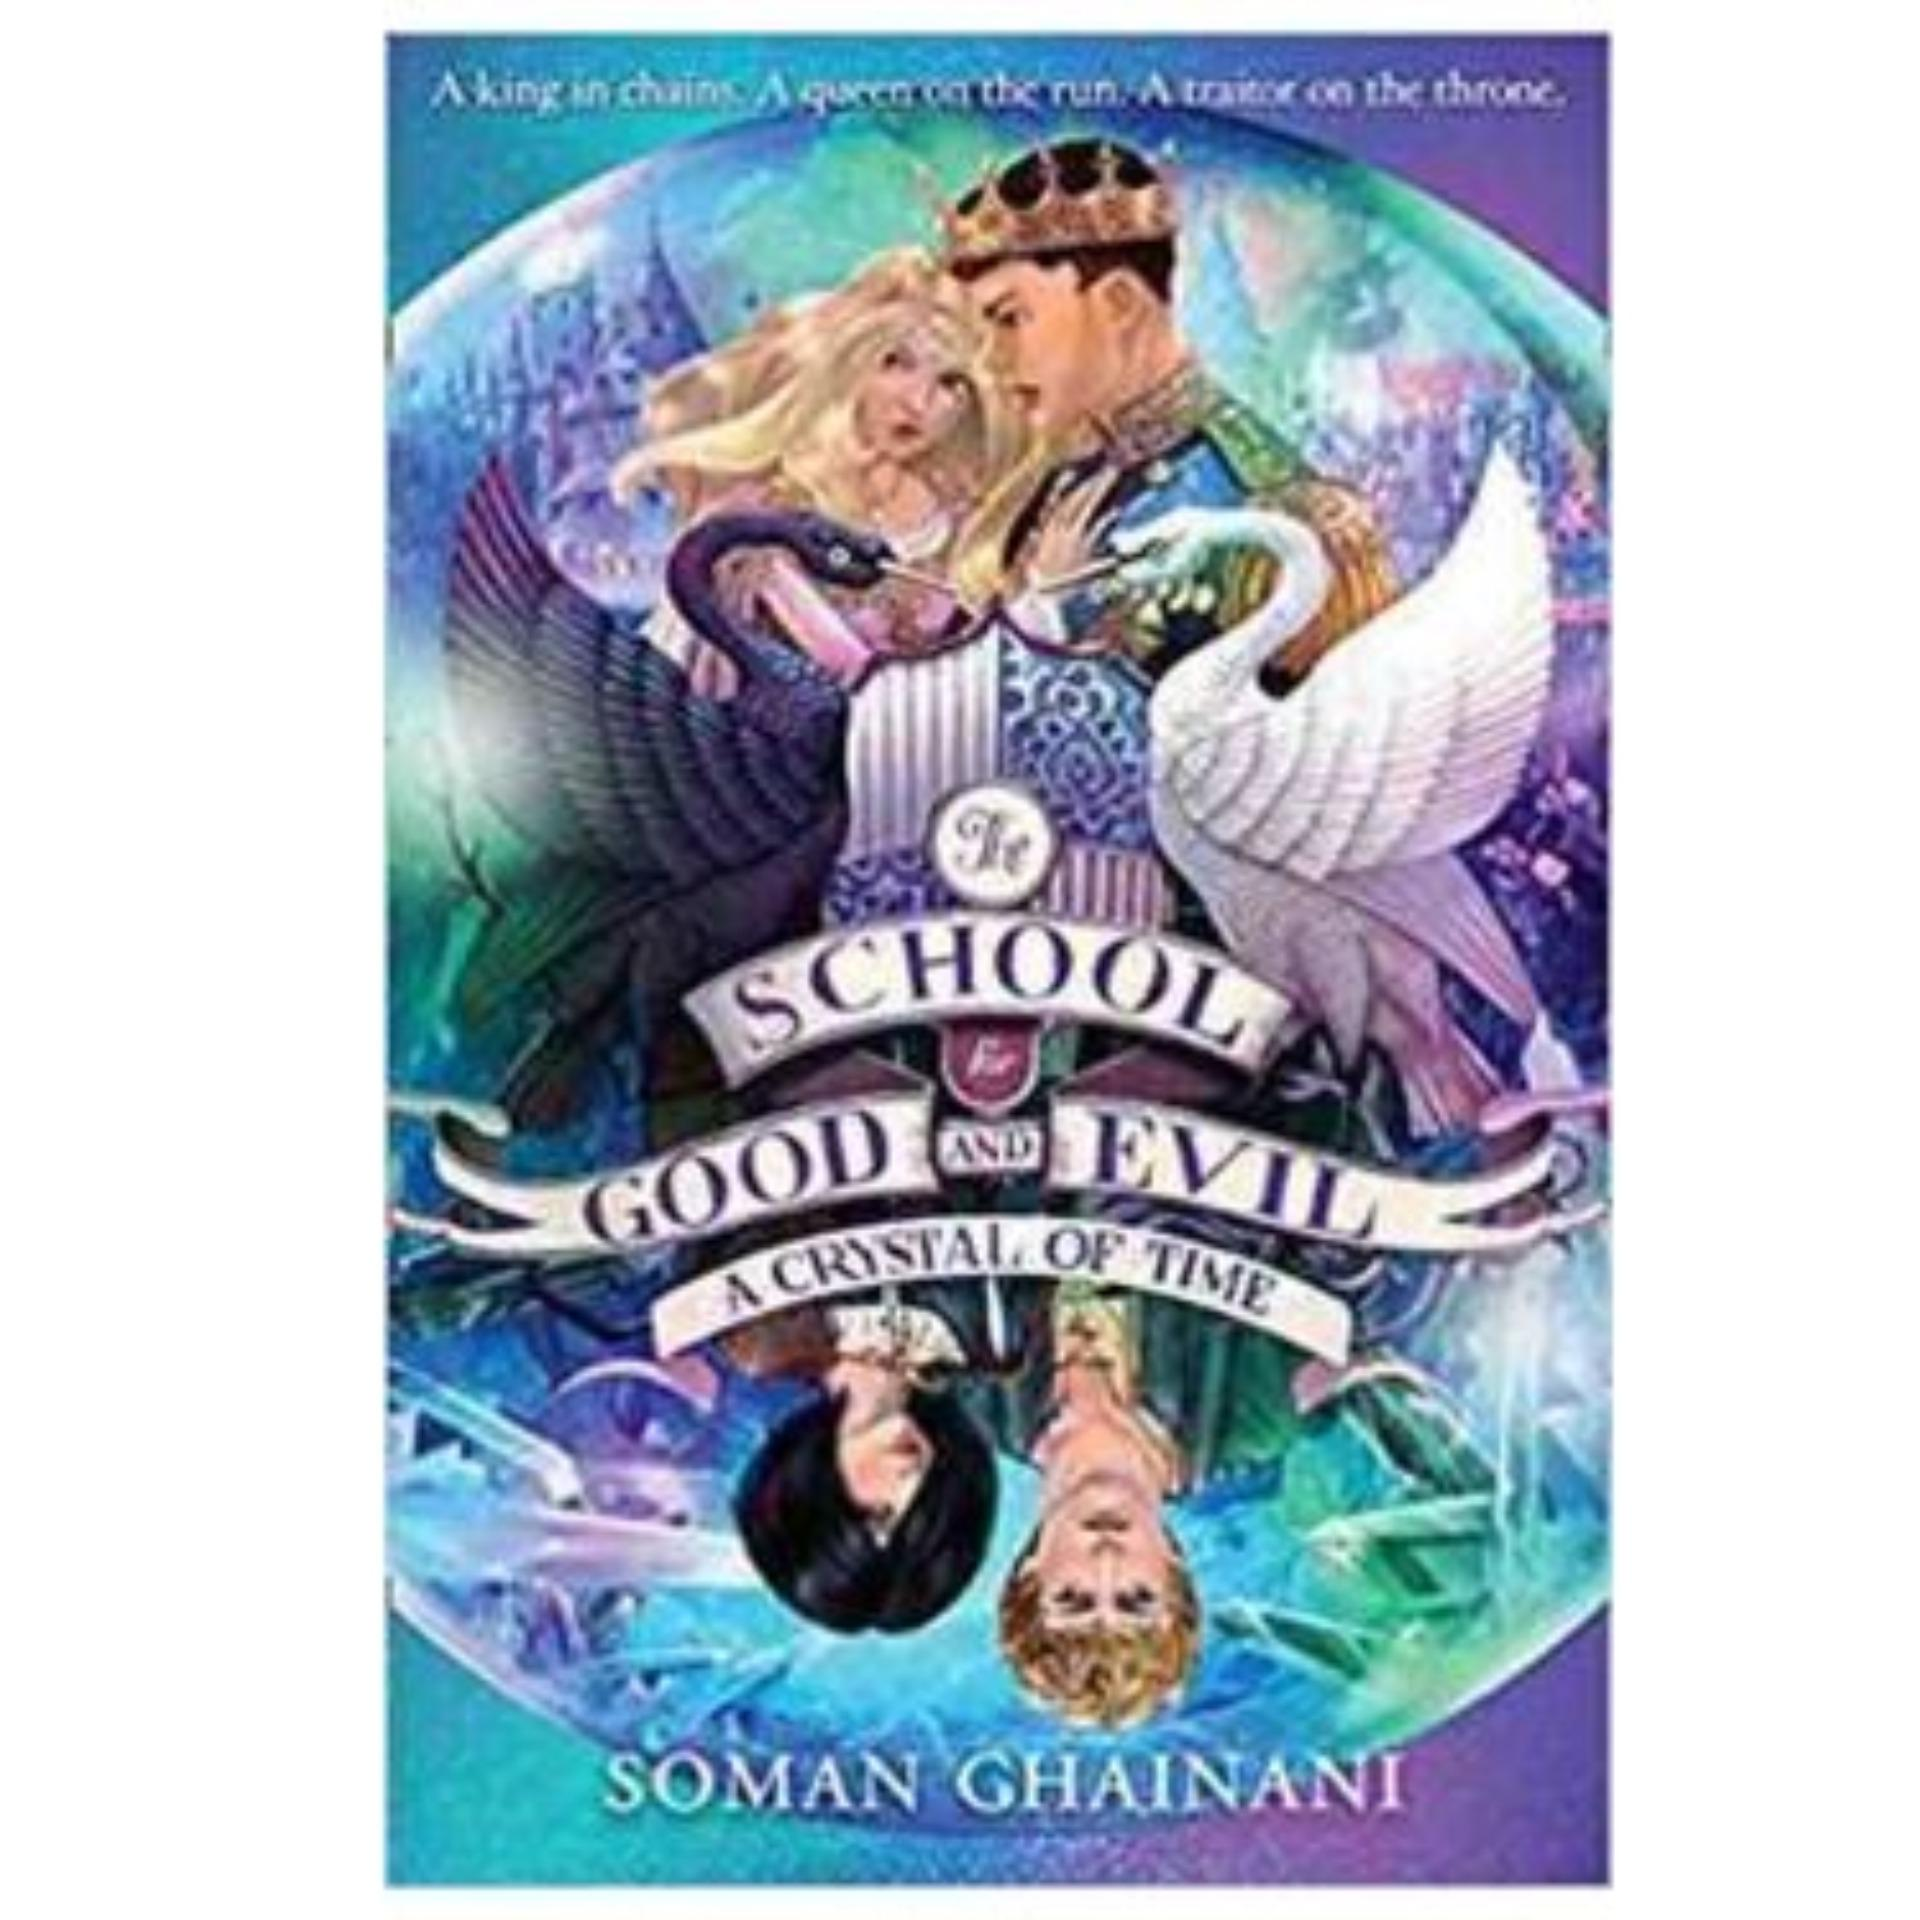 The School for Good and Evil eBook series